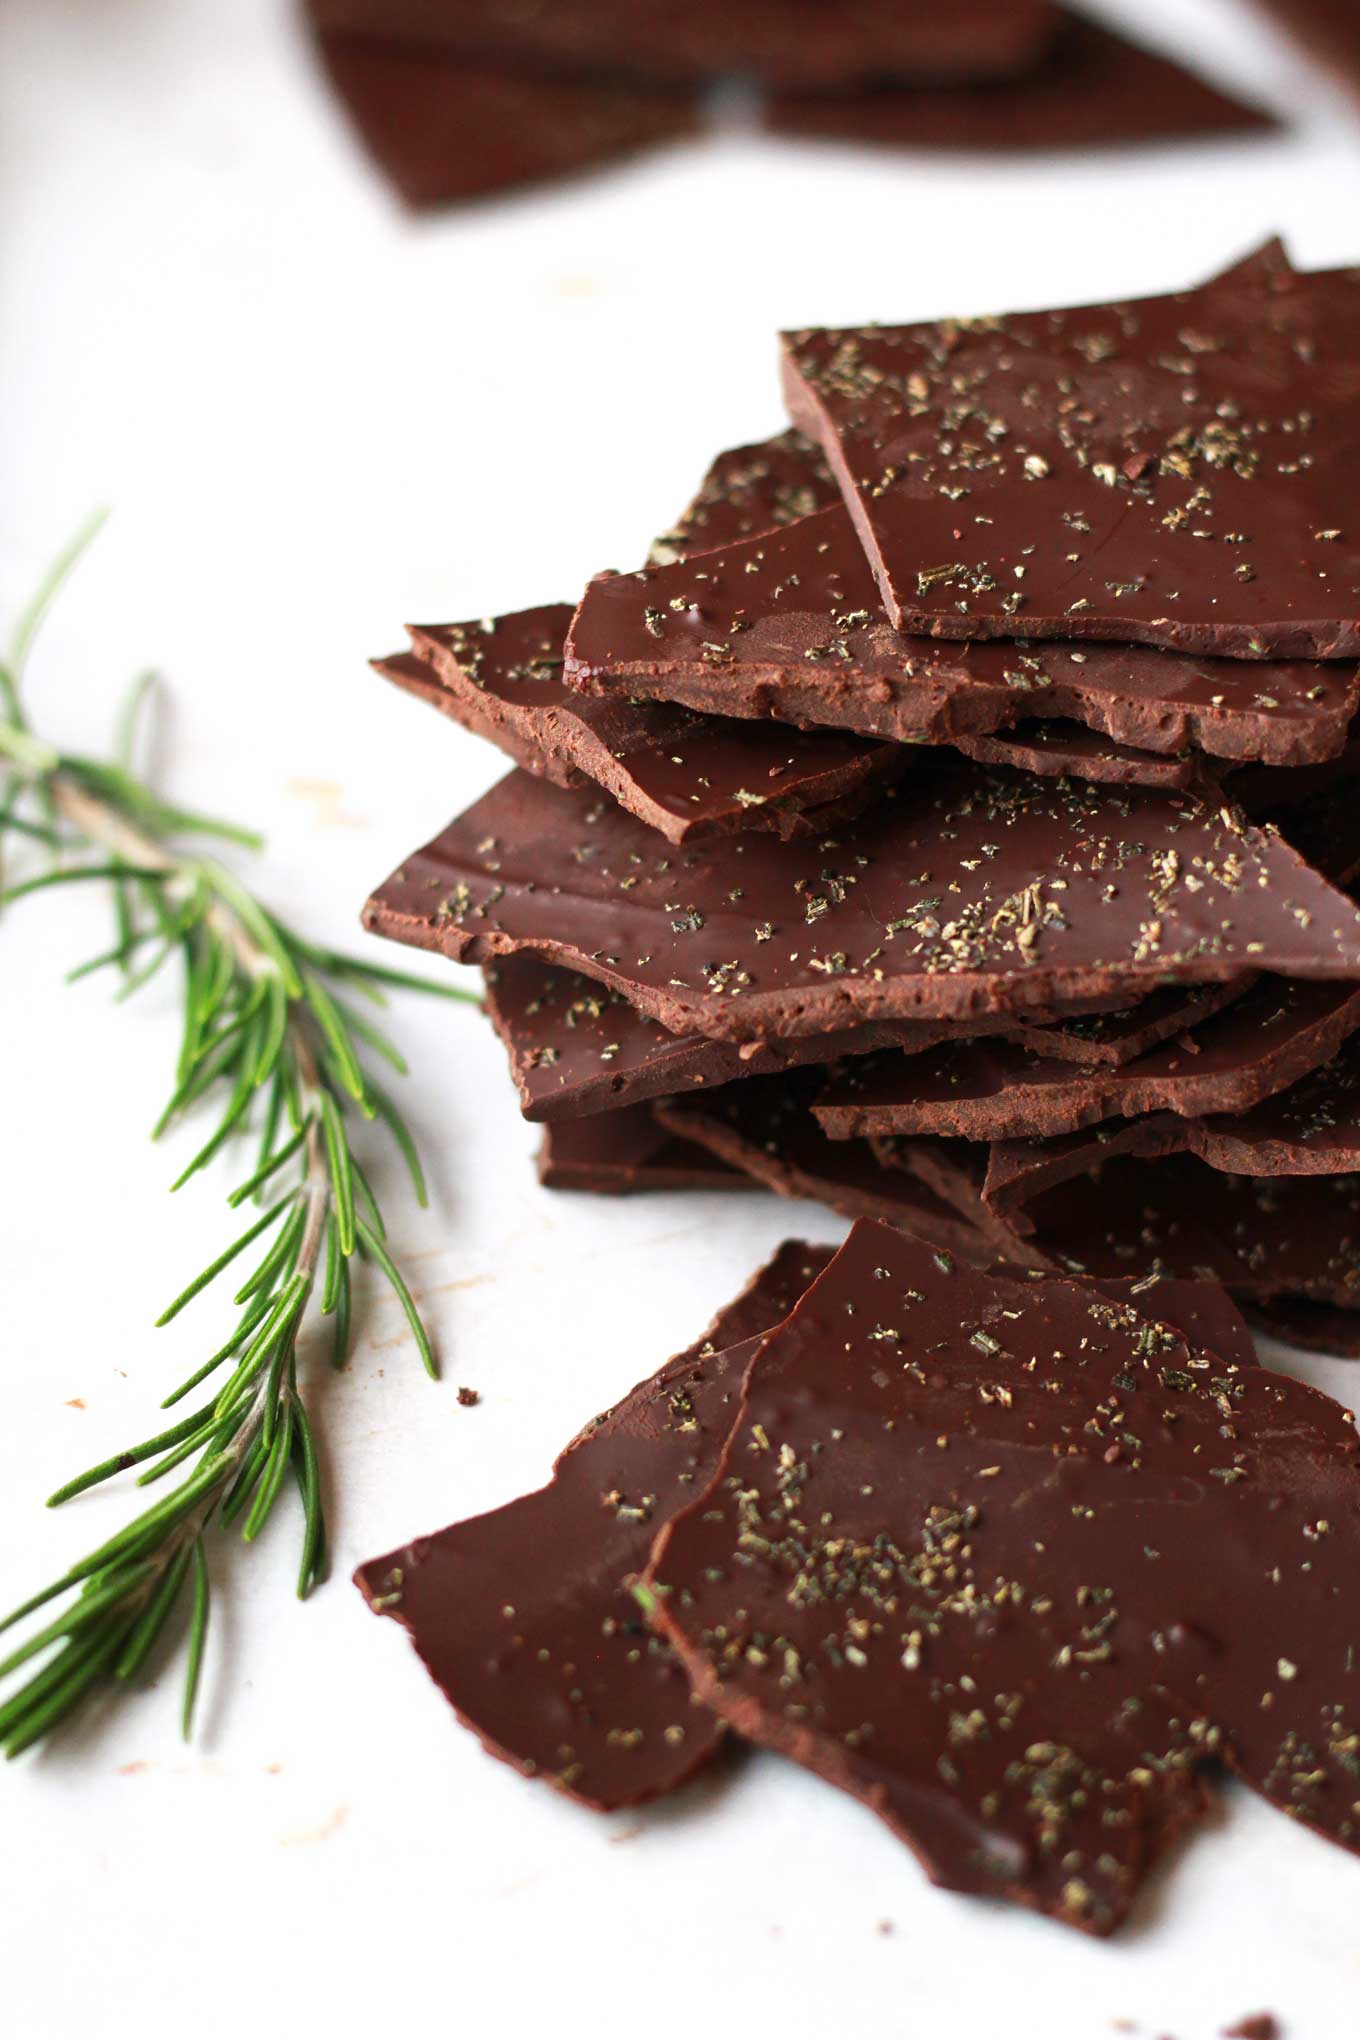 Rosemary Chocolate Bark | Vegan, Dairy-free, oil-free, quick and easy holiday treat | http://eatwithinyourmeans.com